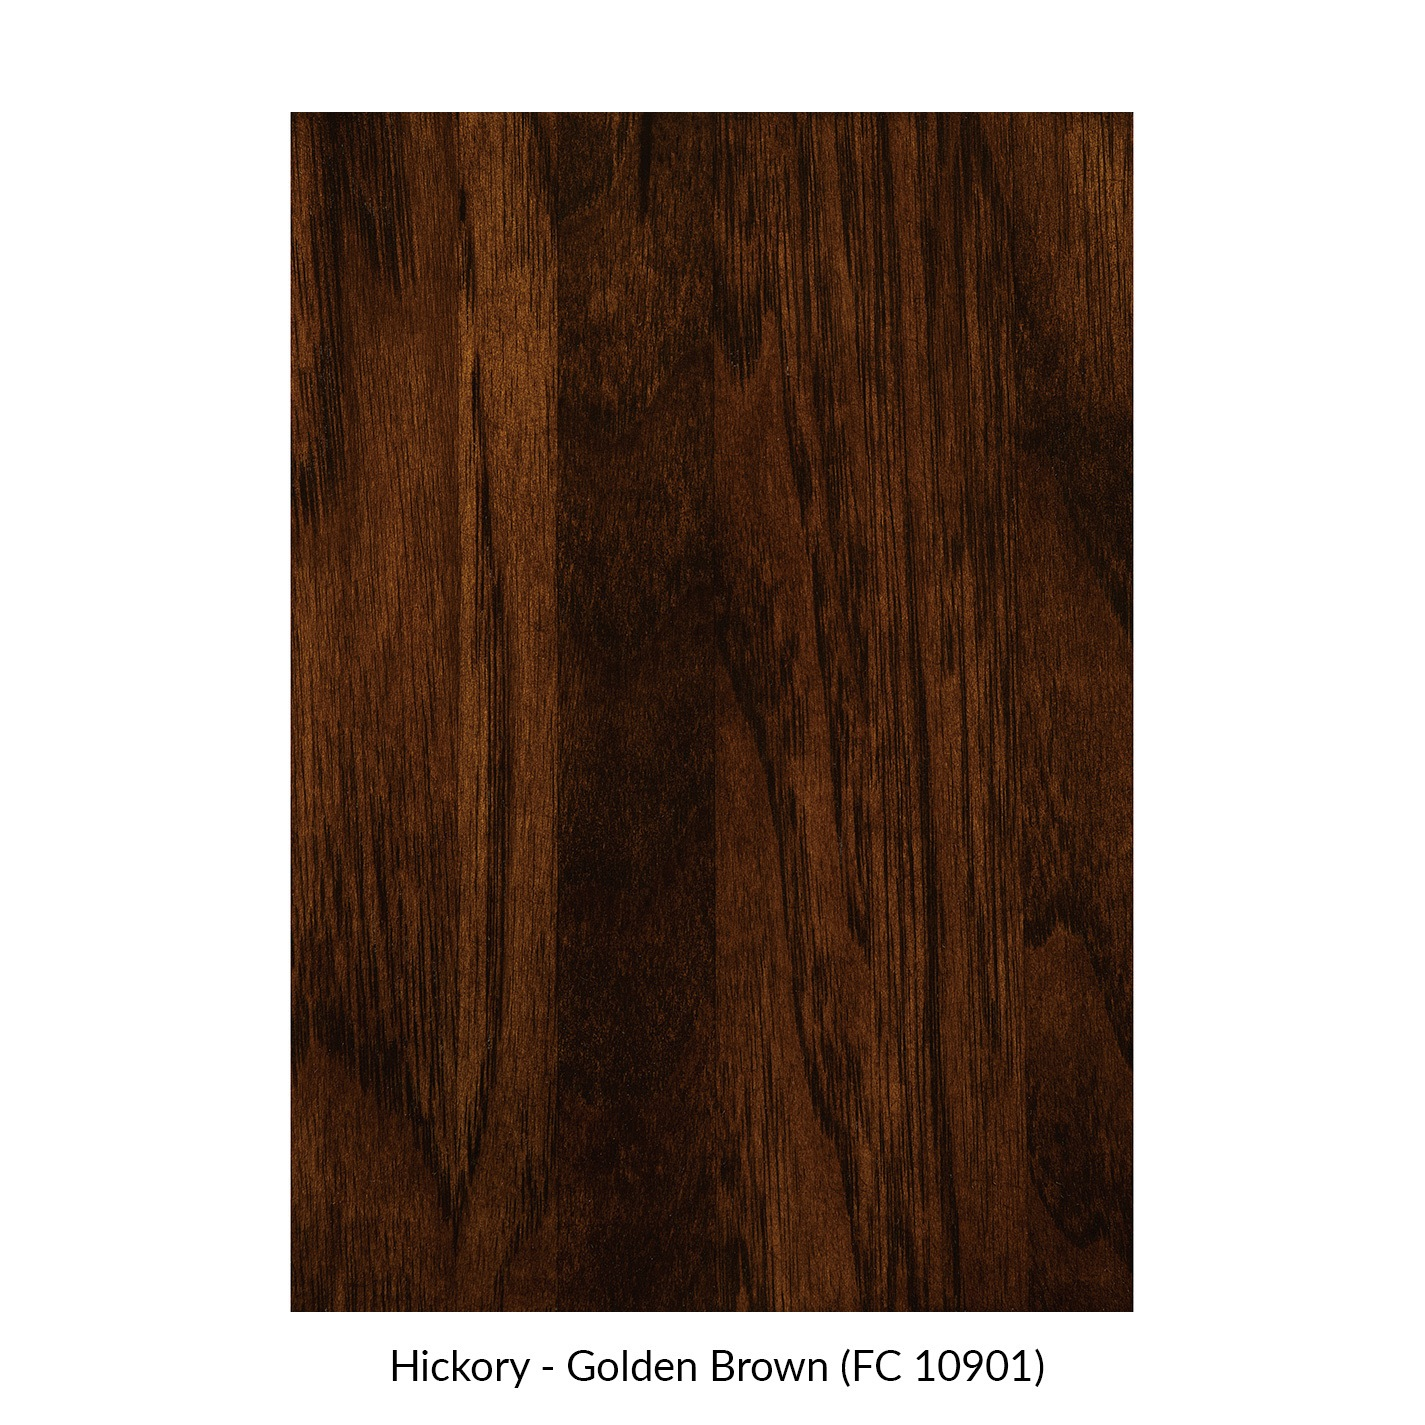 spectrum-hickory-golden-brown-fc-10901.jpg